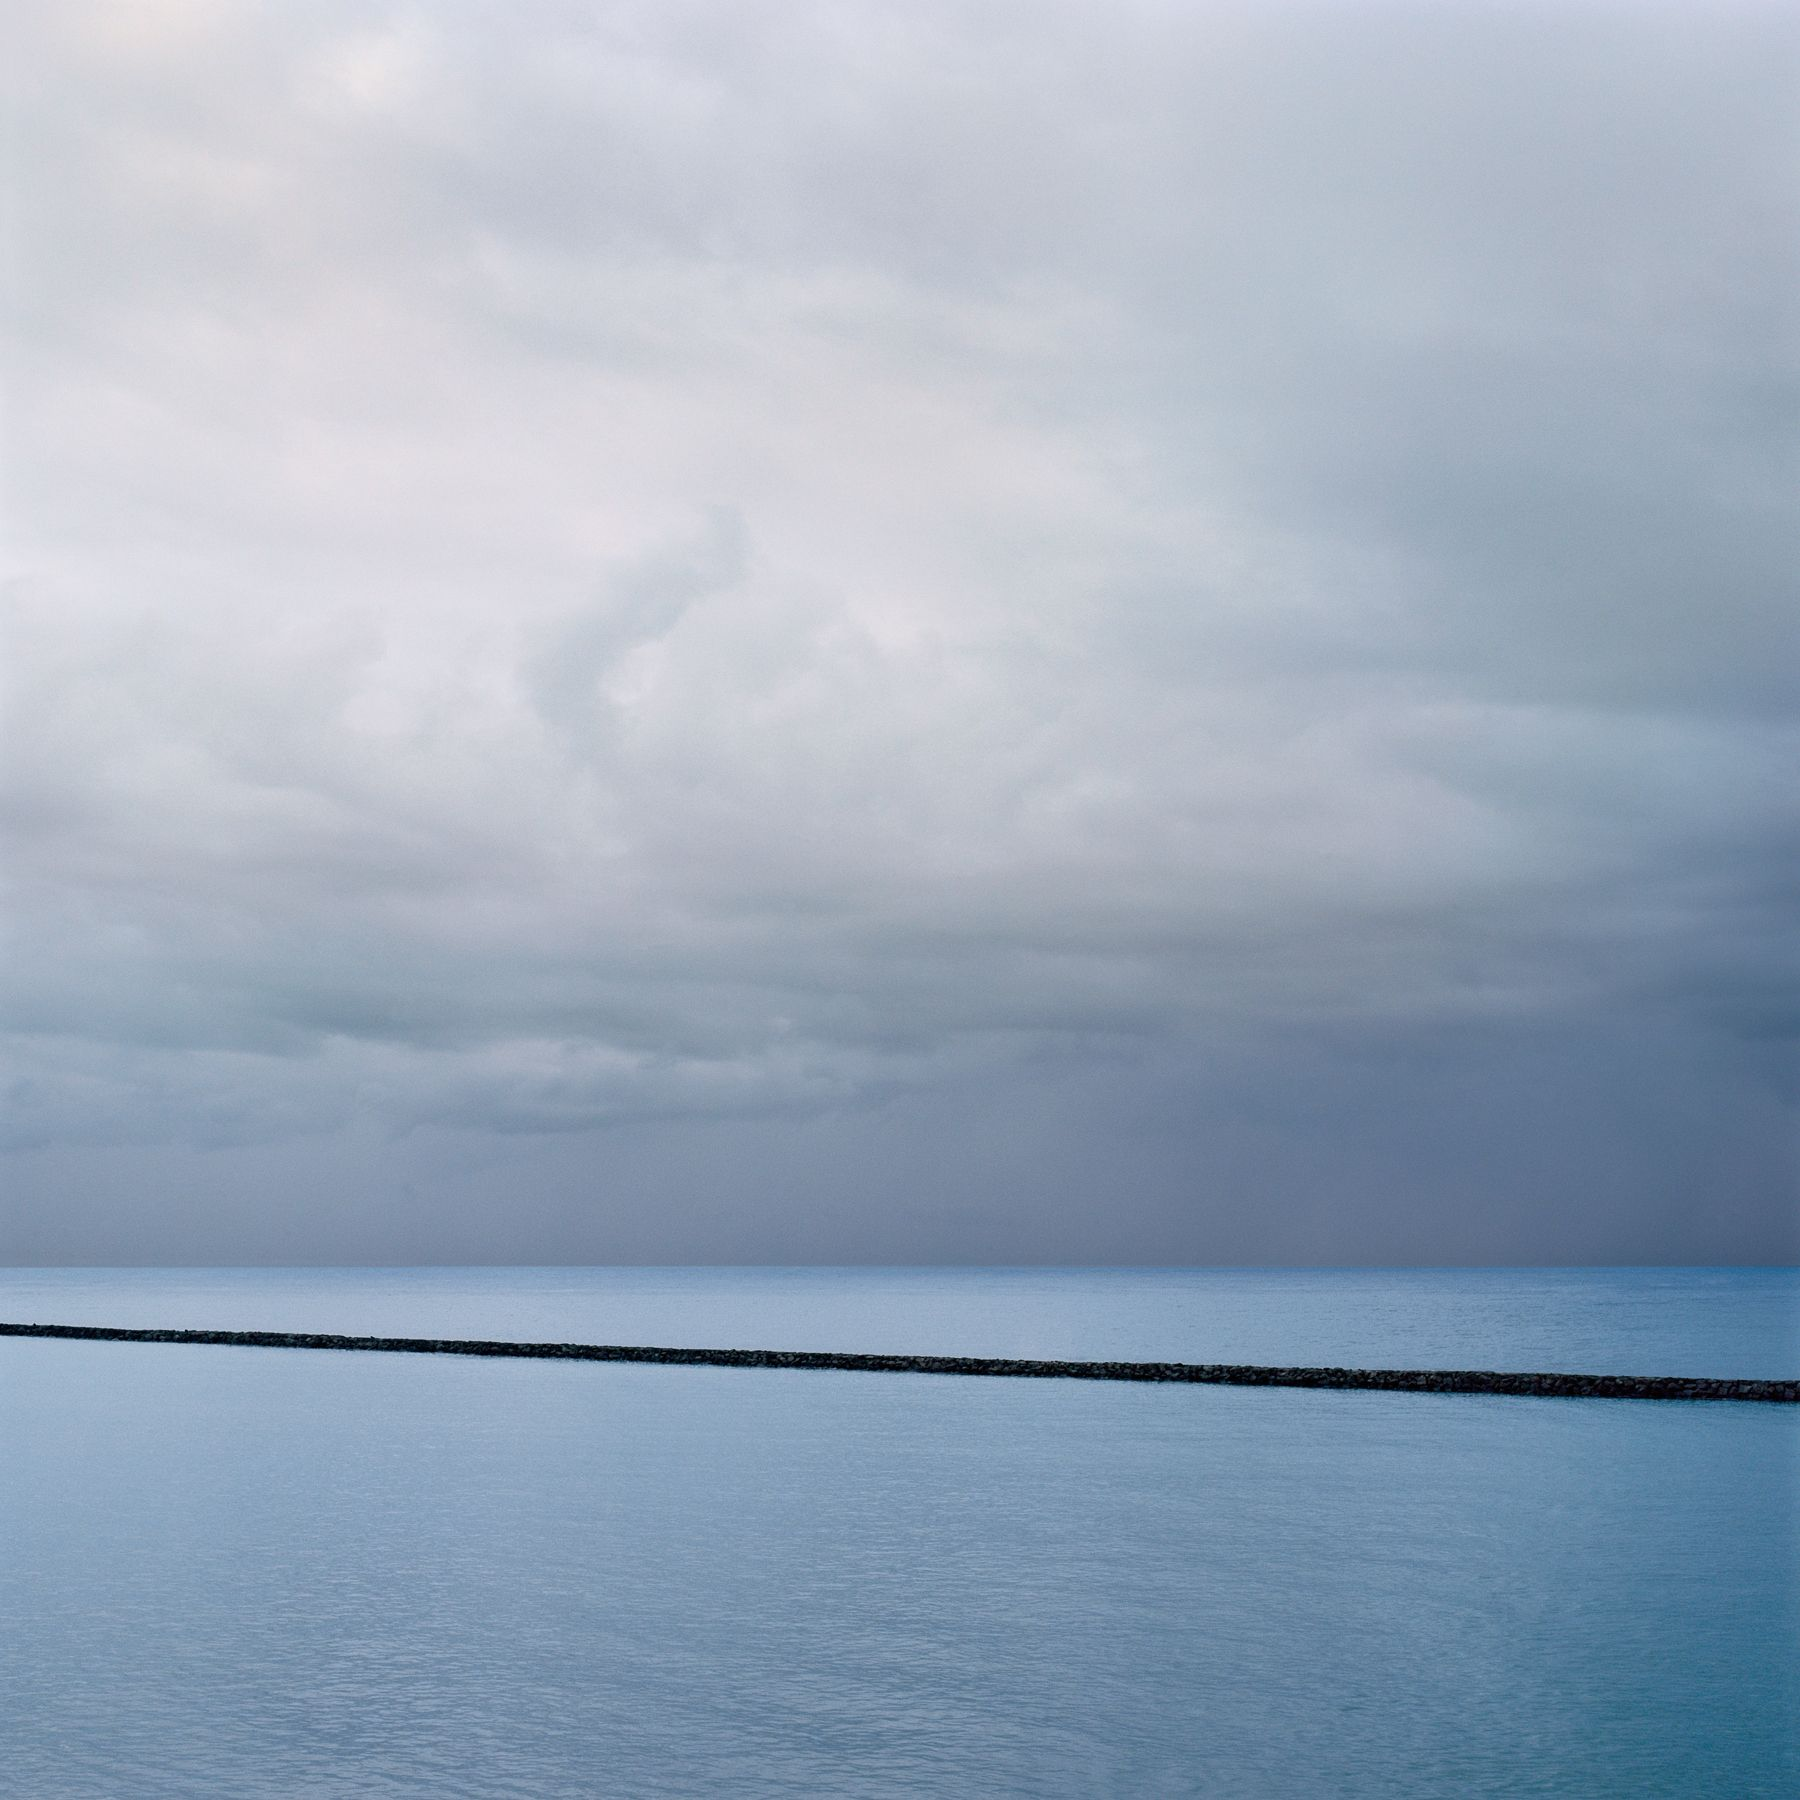 Pacific Sea Wall, Archival Pigment Print